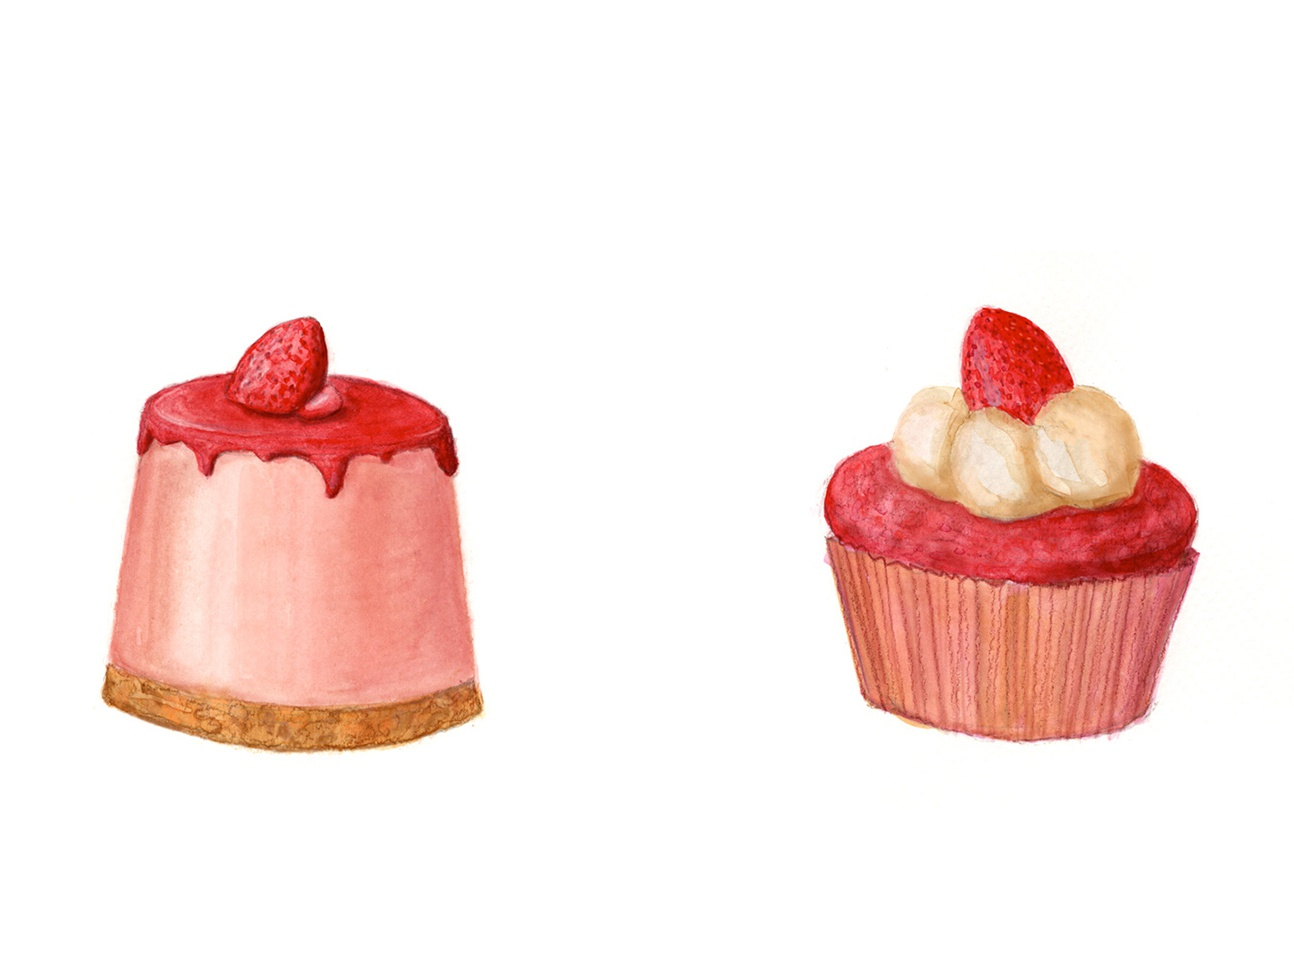 Strawberry Puddin And Cupcake Watercolor Illustration By